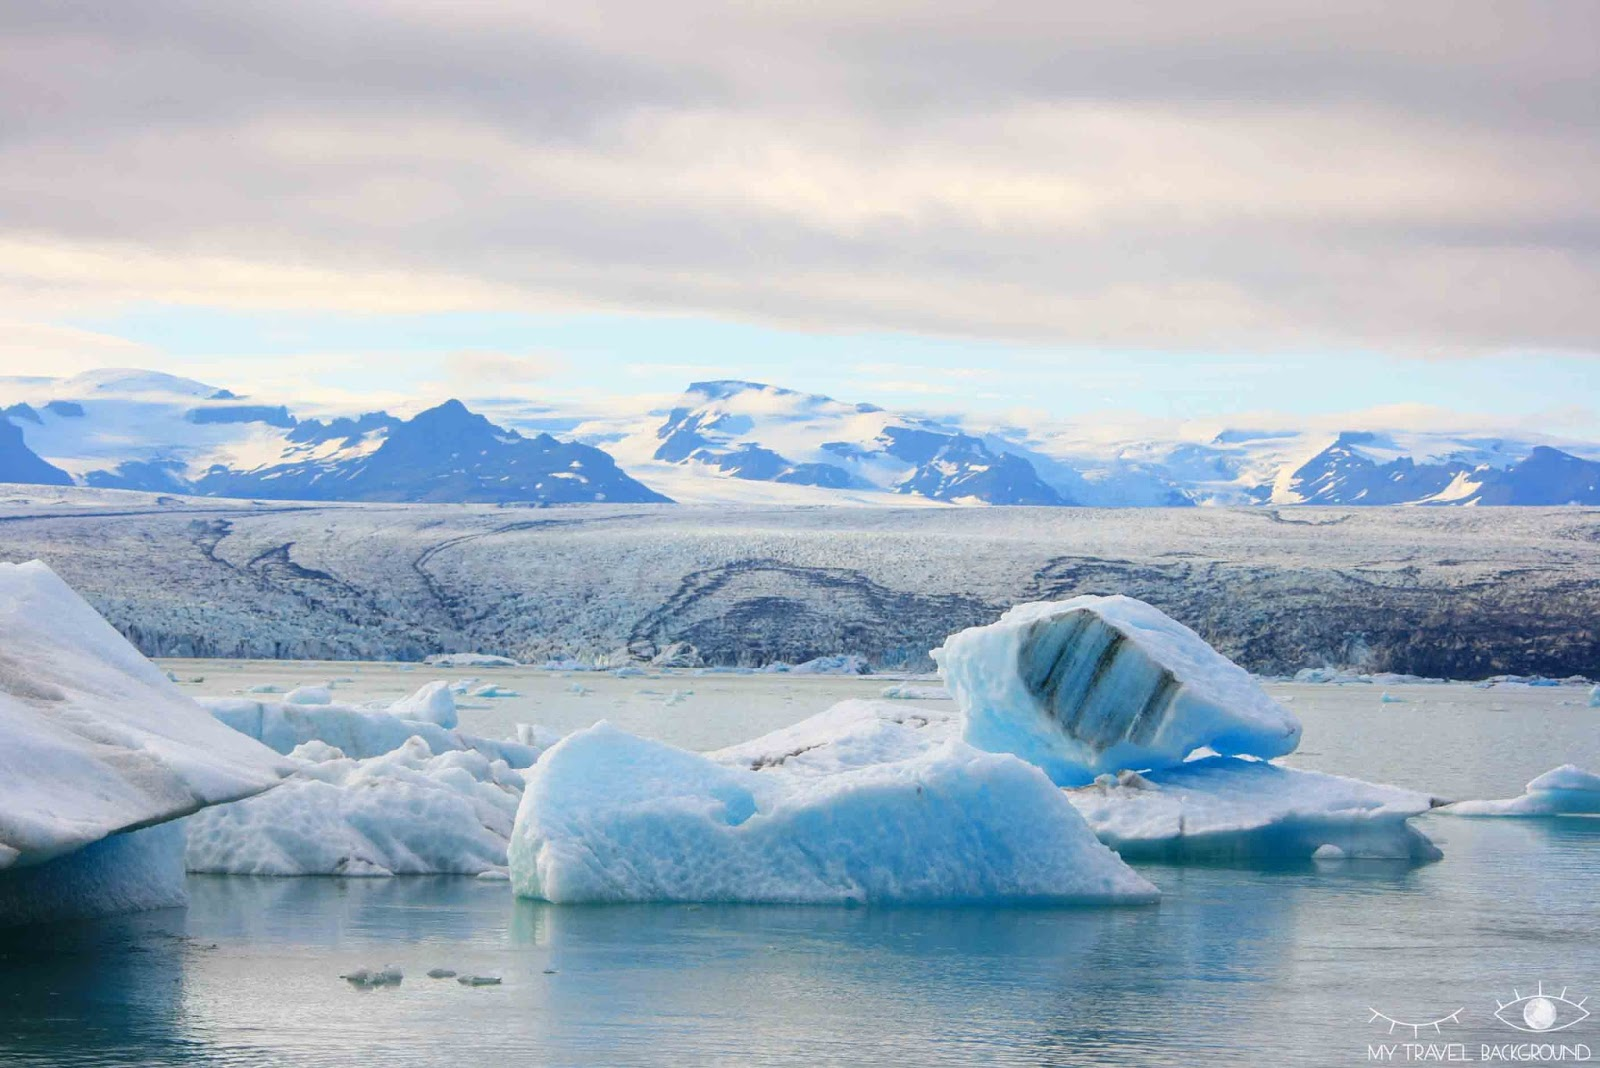 My Travel Background : Glaciers et icebergs dans le Sud de l'Islande - Jökulsarlon